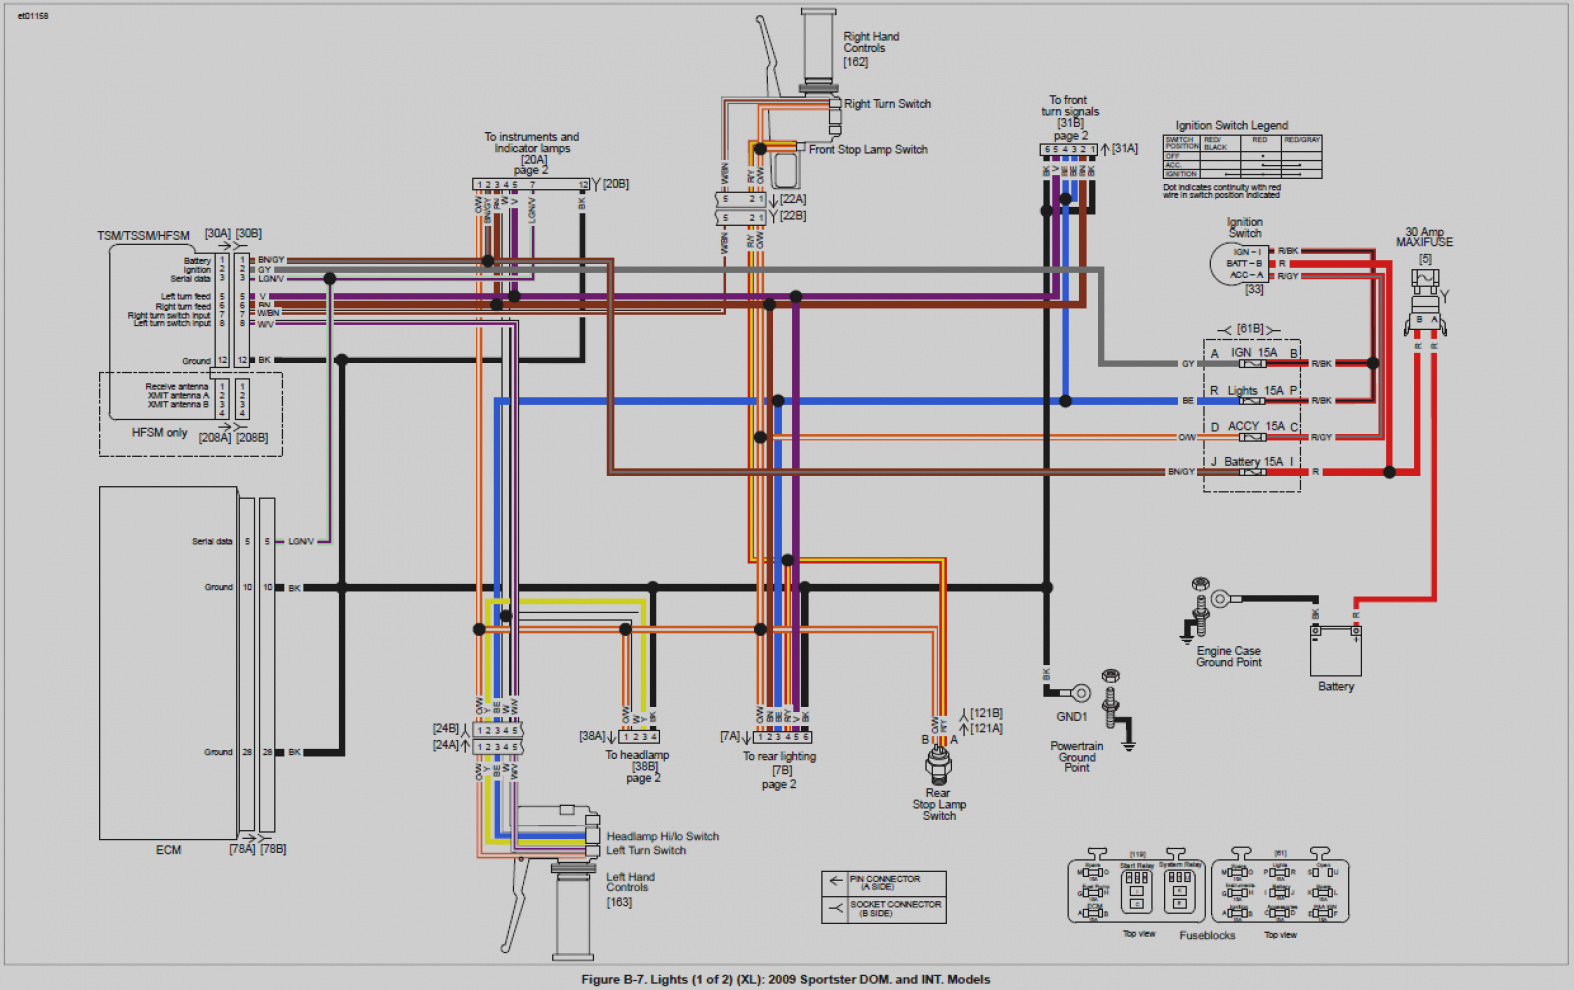 Badlands 1995 Harley Turn Signal Wiring Diagram | Wiring Diagram - Badlands Turn Signal Module Wiring Diagram